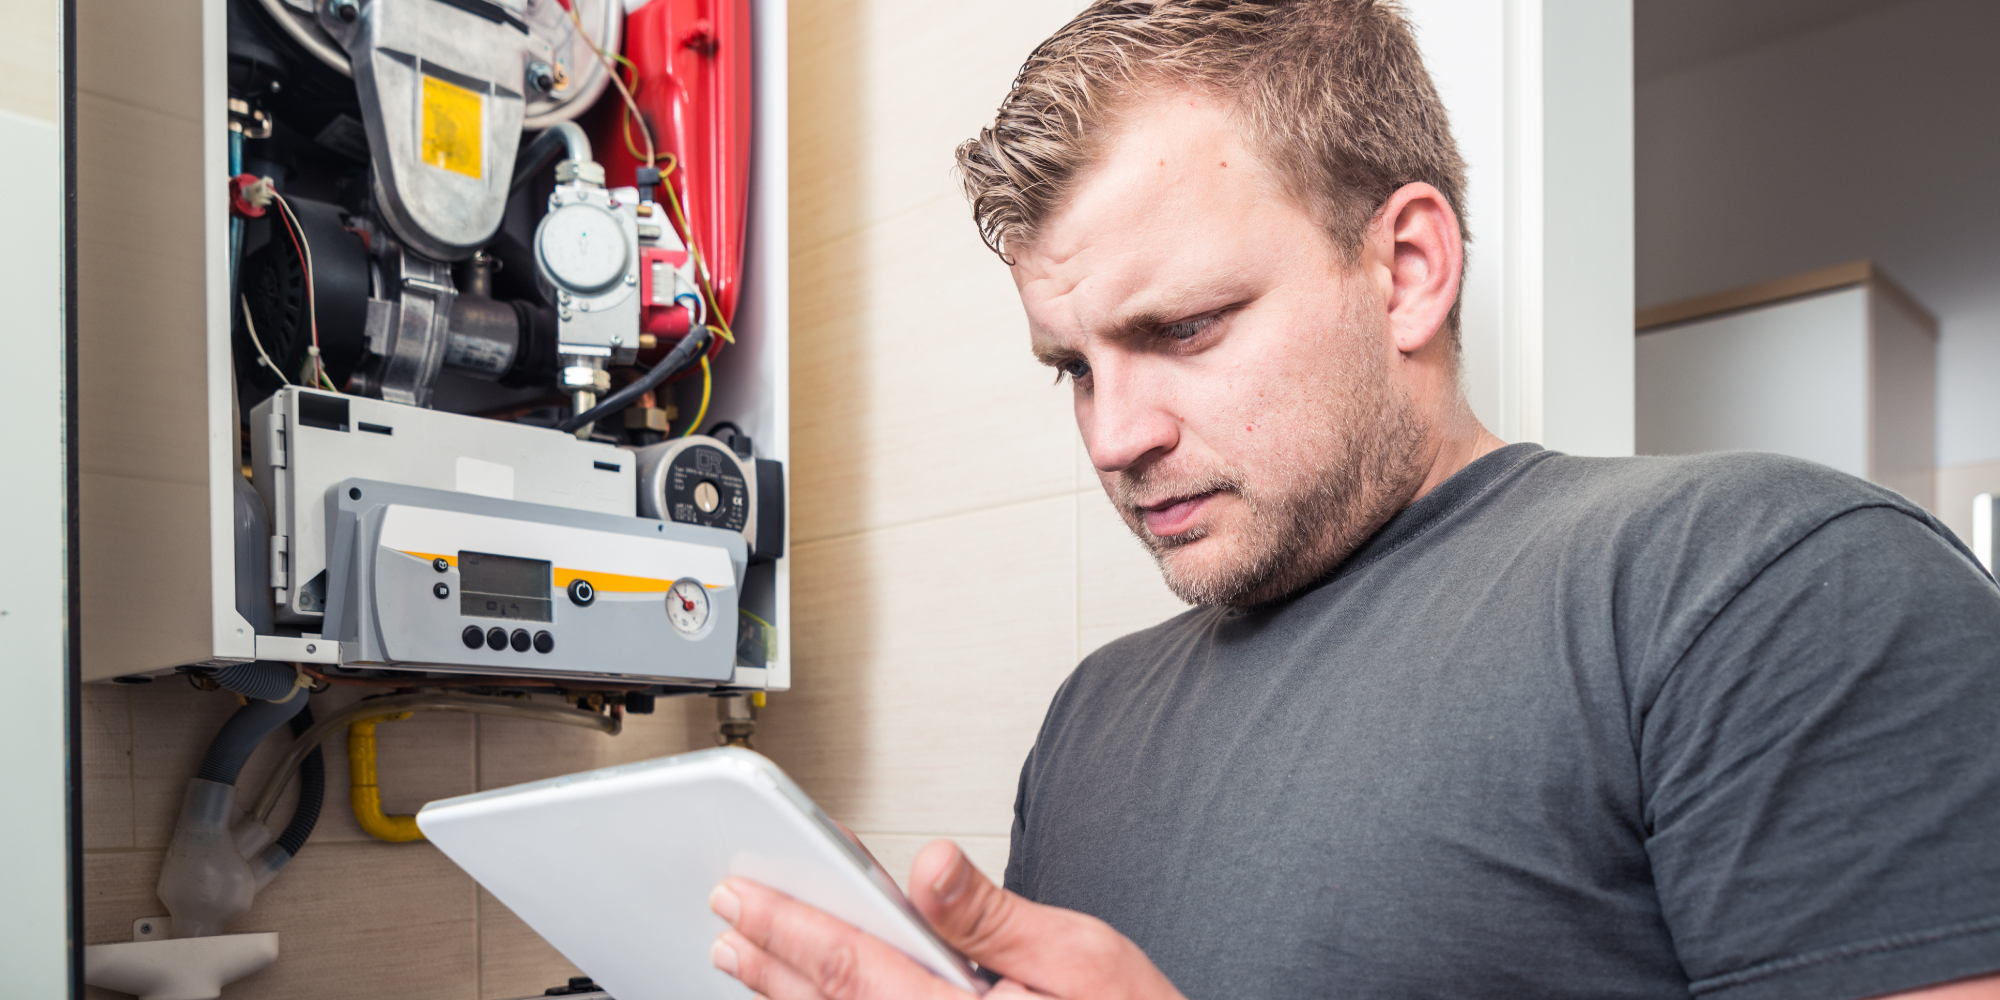 Worker checking iPad while repairing a boiler